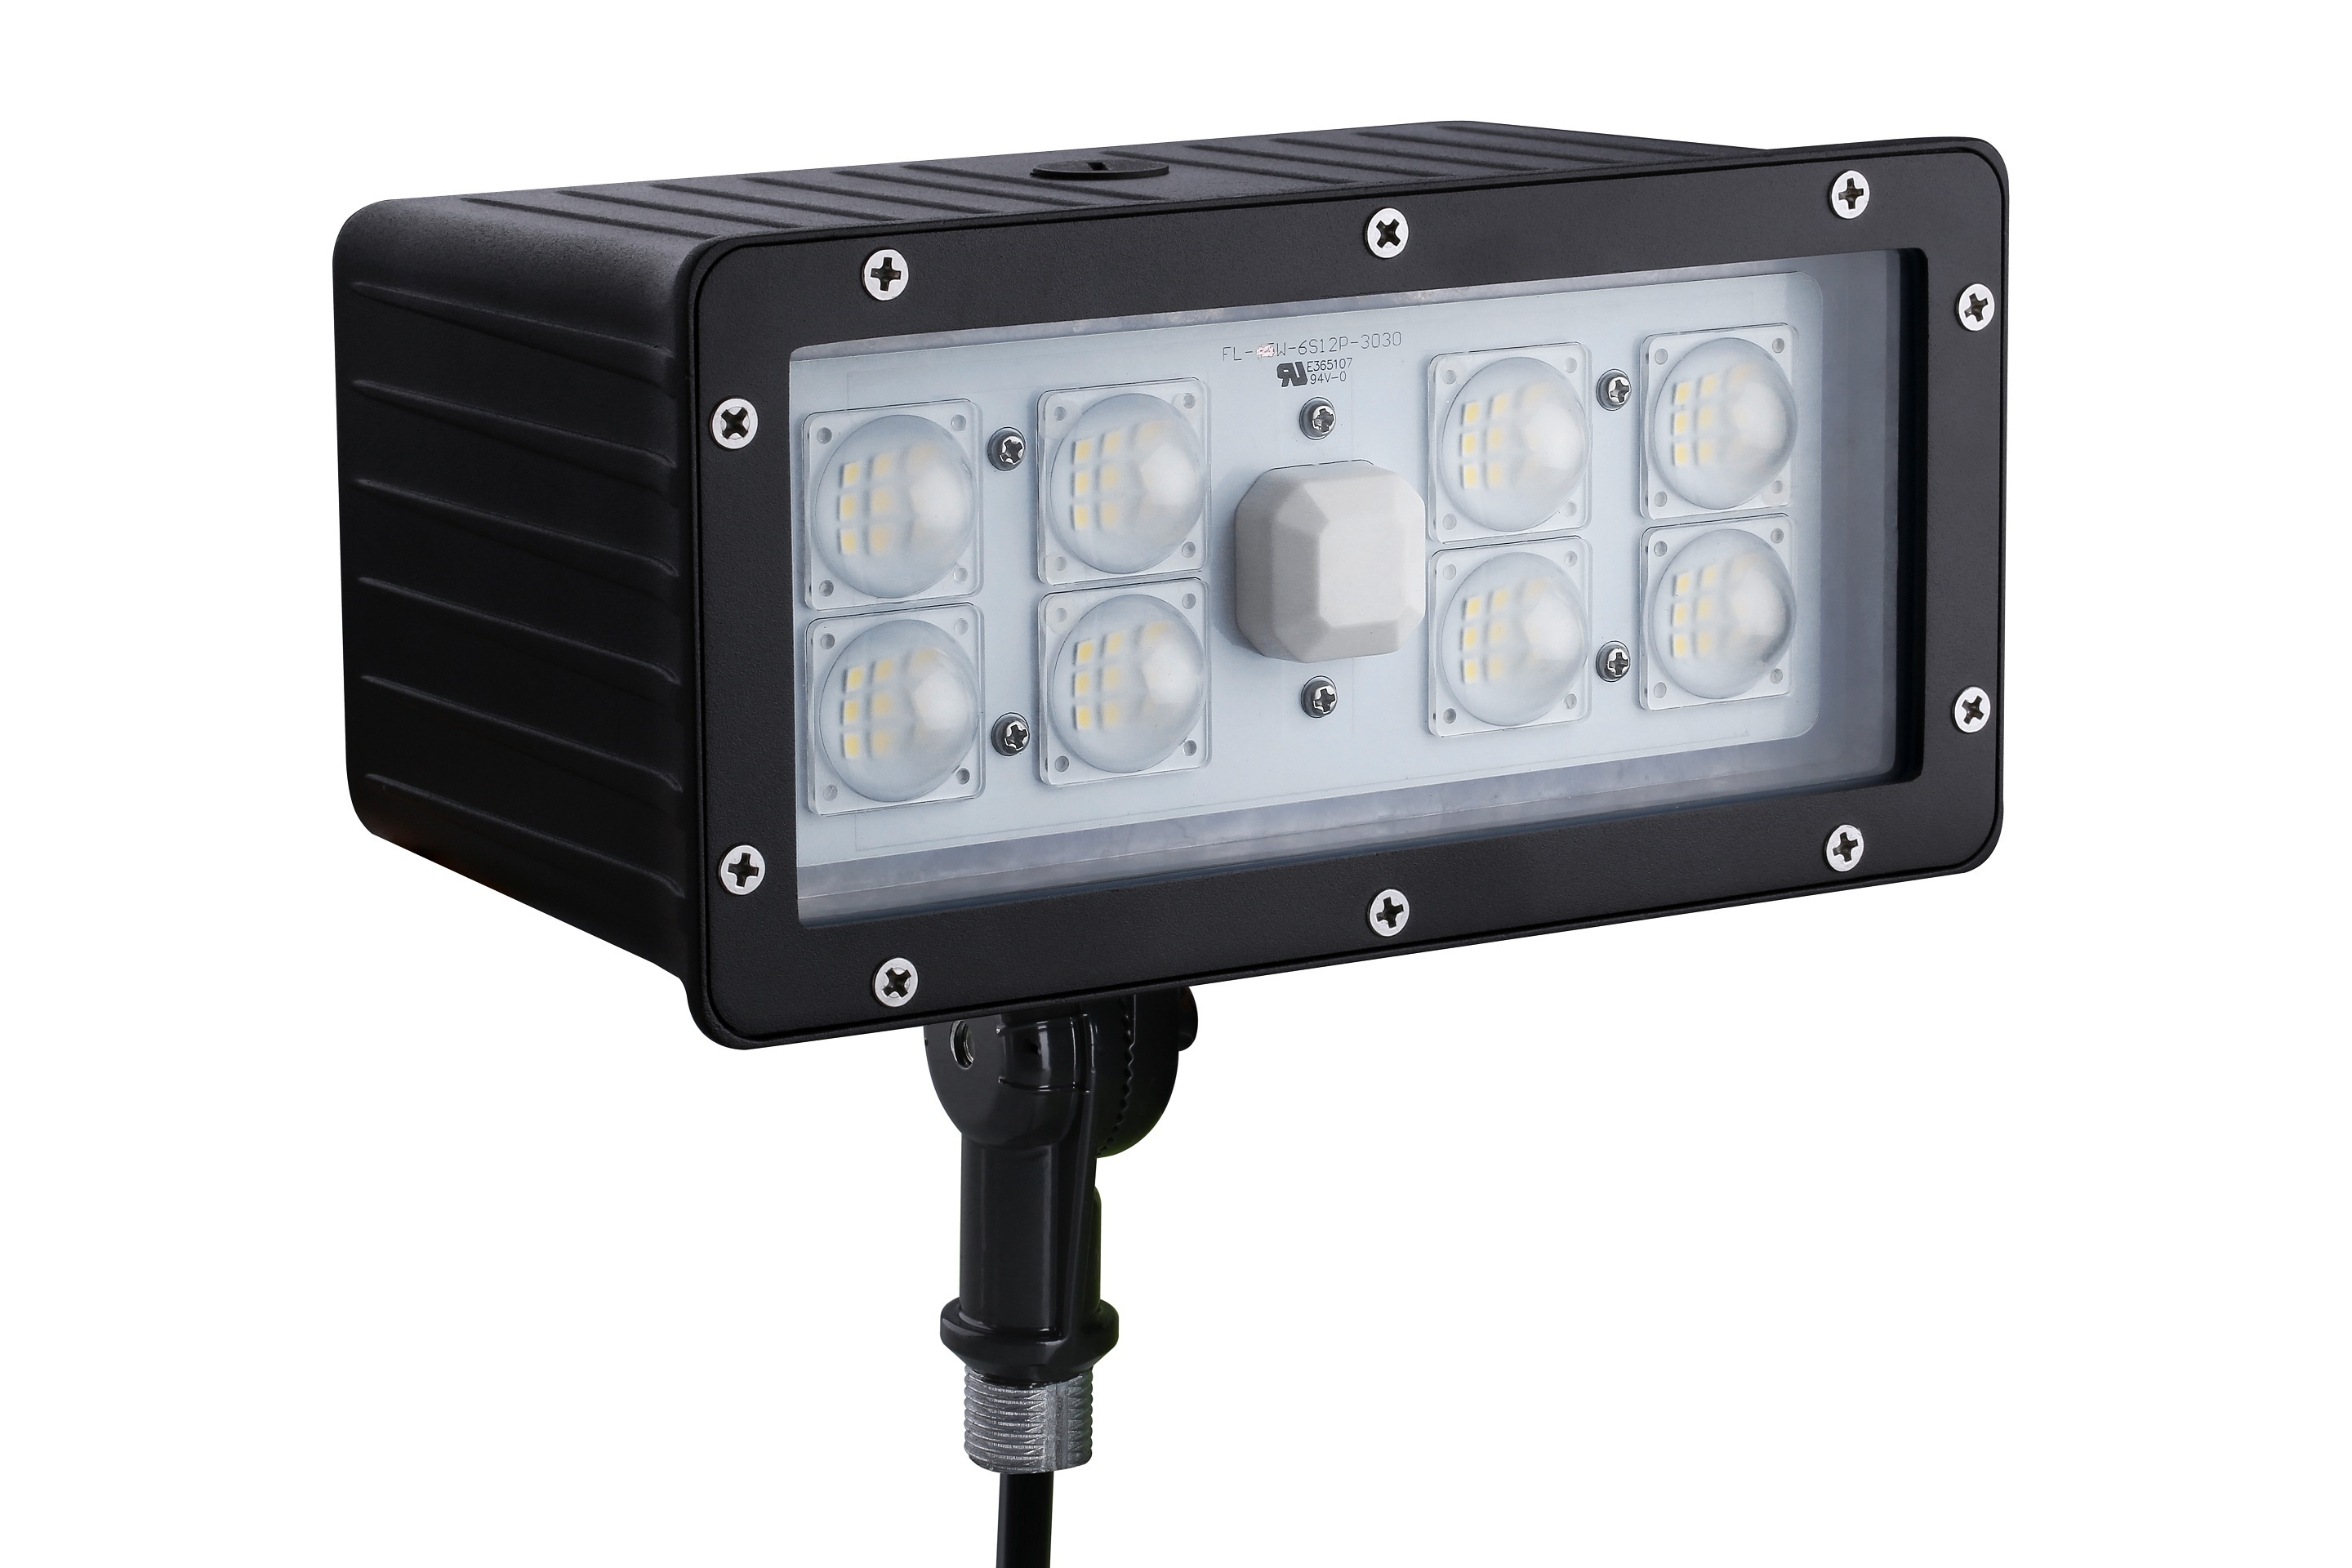 lumegen watts light equiv flood led watt lighting voltage high equivalent lumens by floodlight